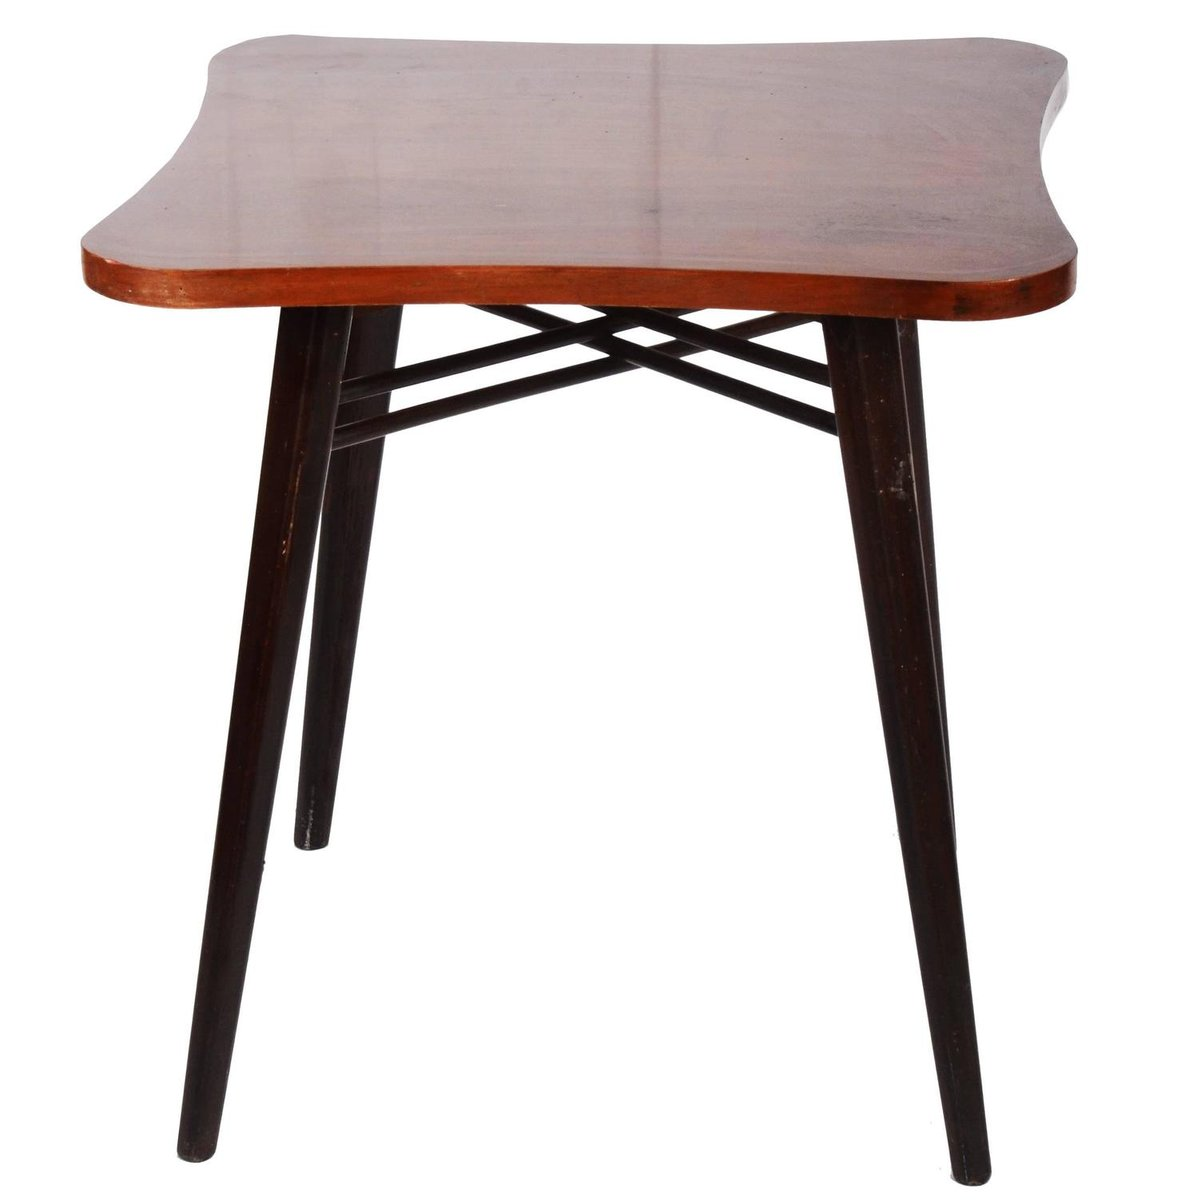 Walnut and lacquer side table 1970s for sale at pamono for Walnut side table